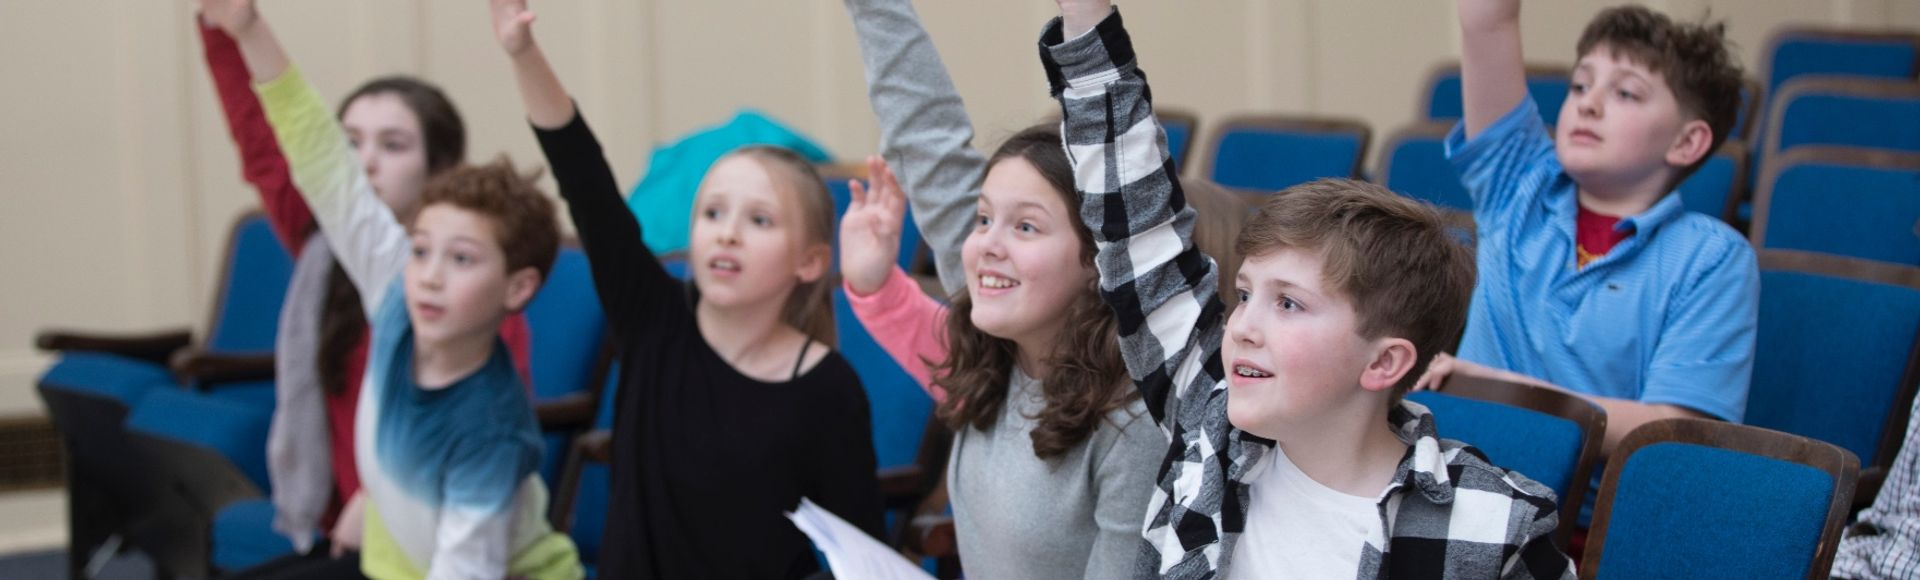 children with hands raised eager to answer a question